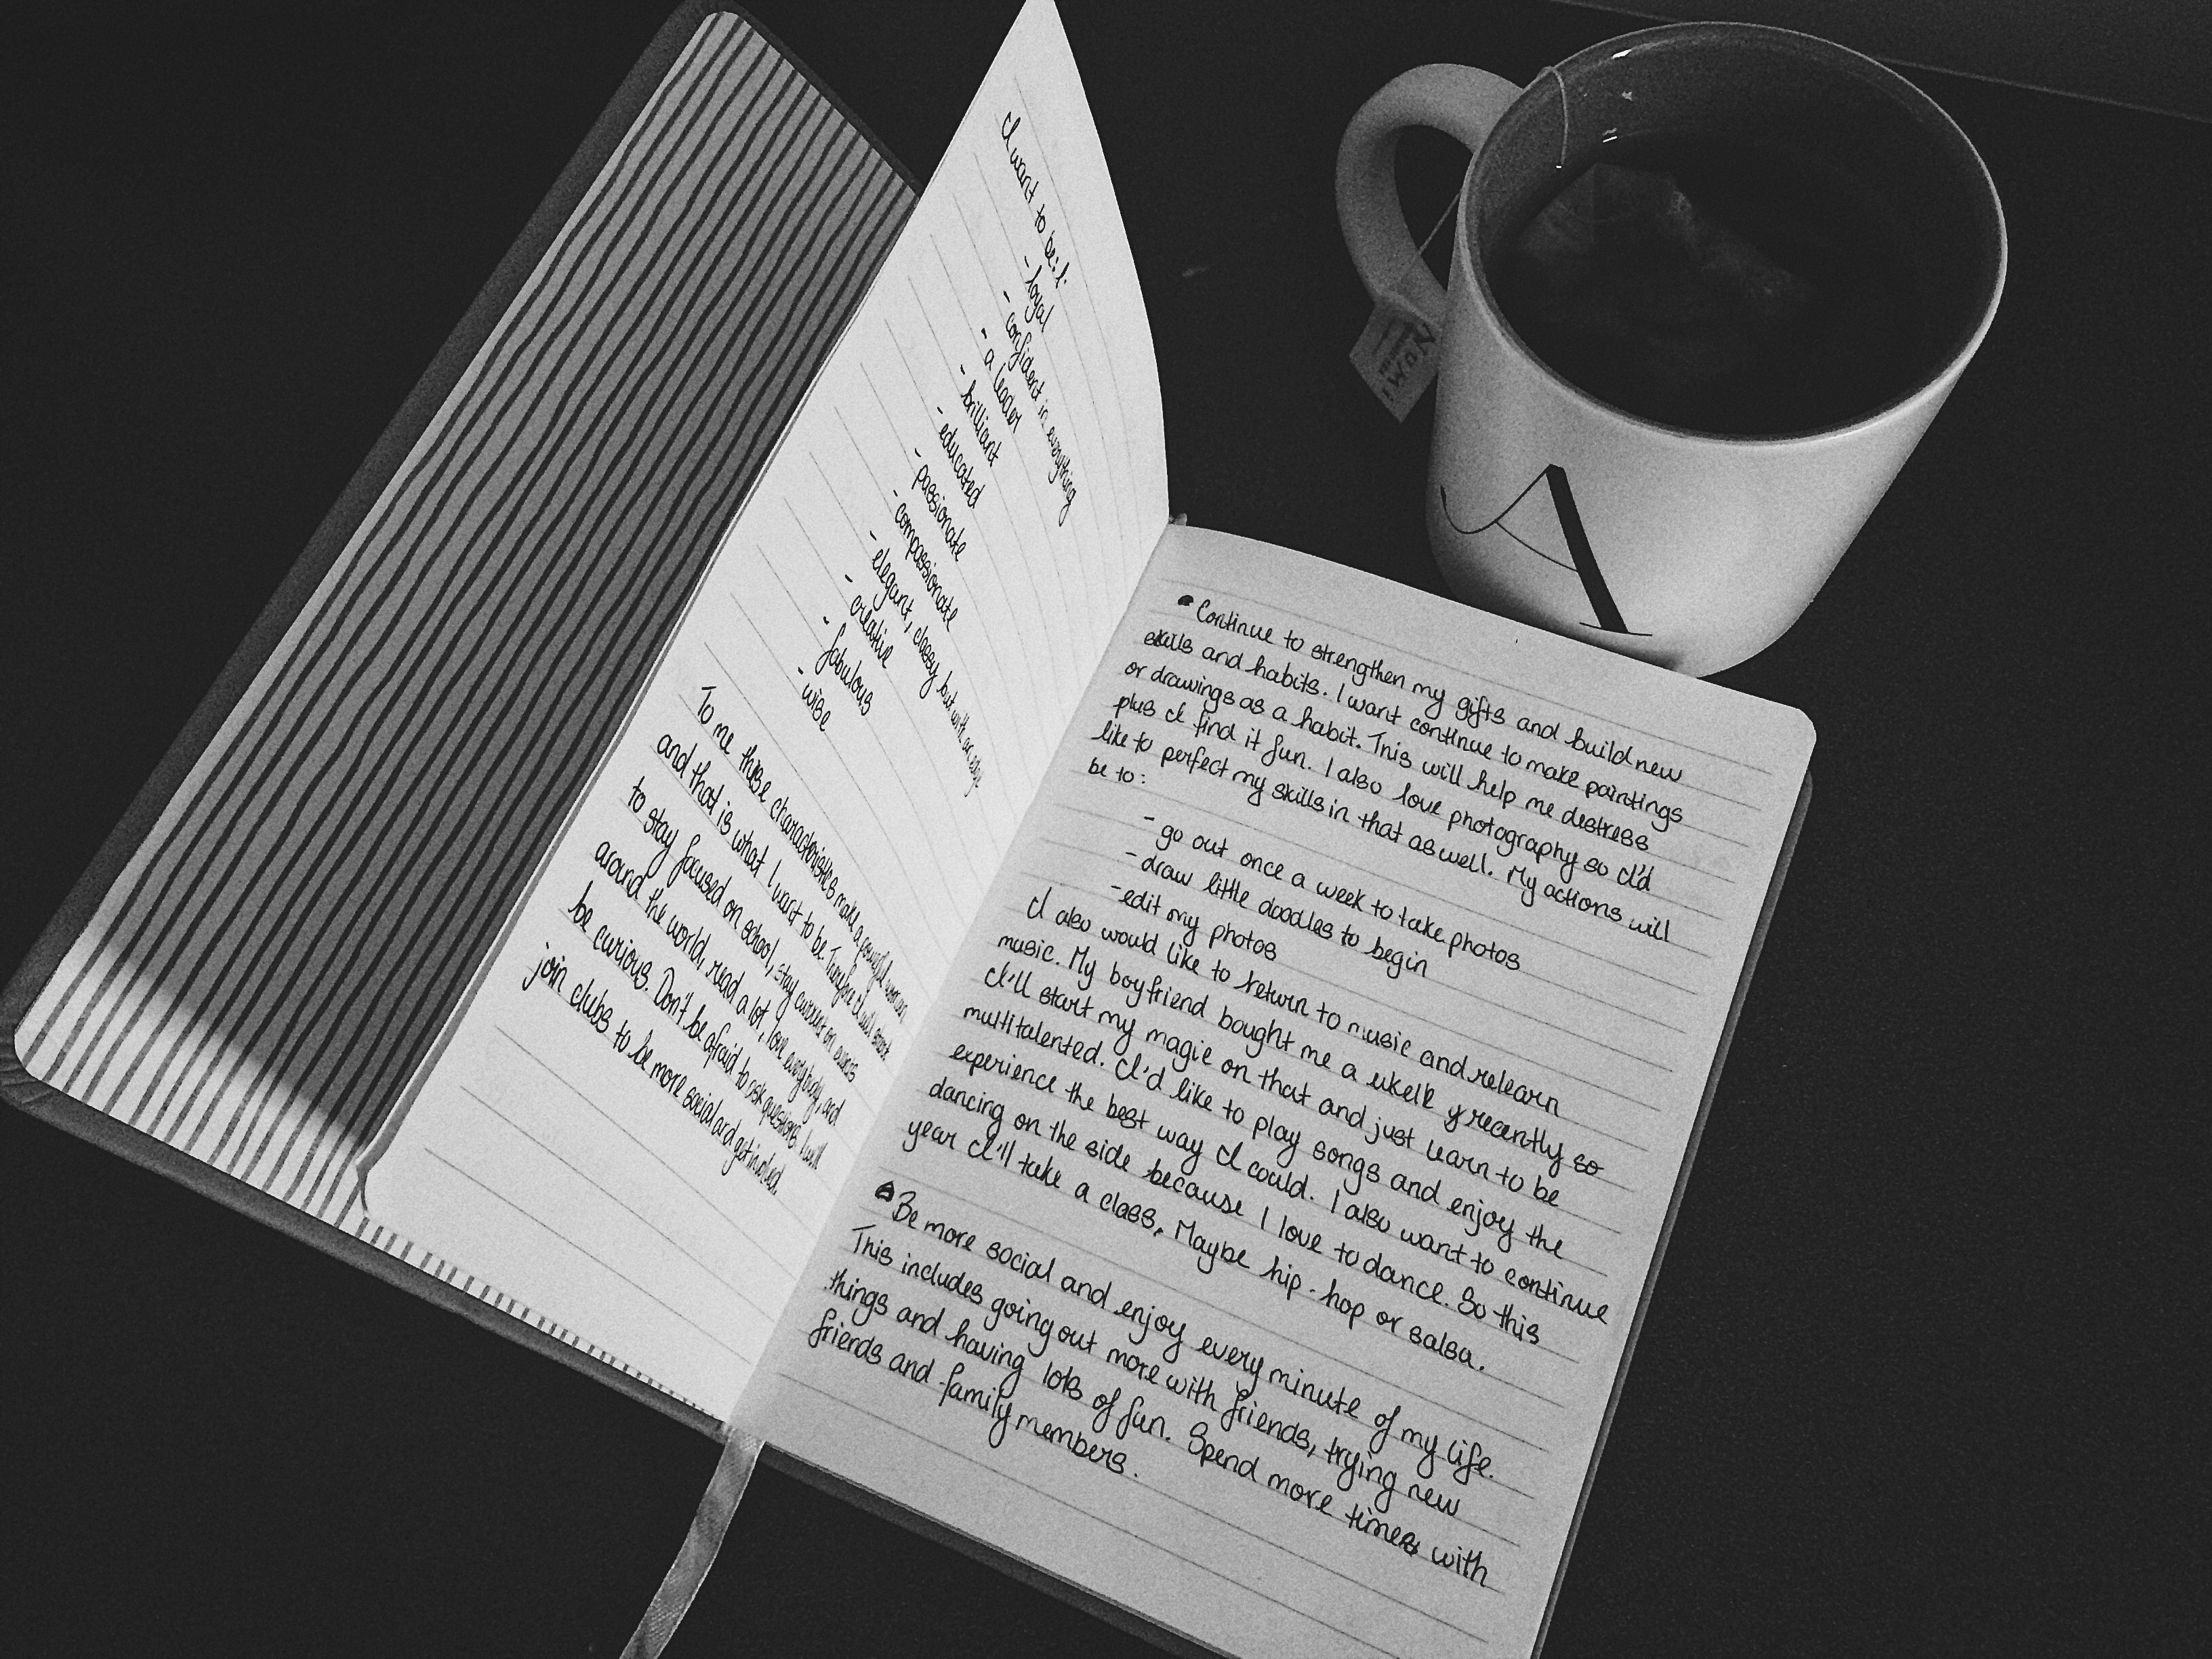 A picture of my journal and tea mug